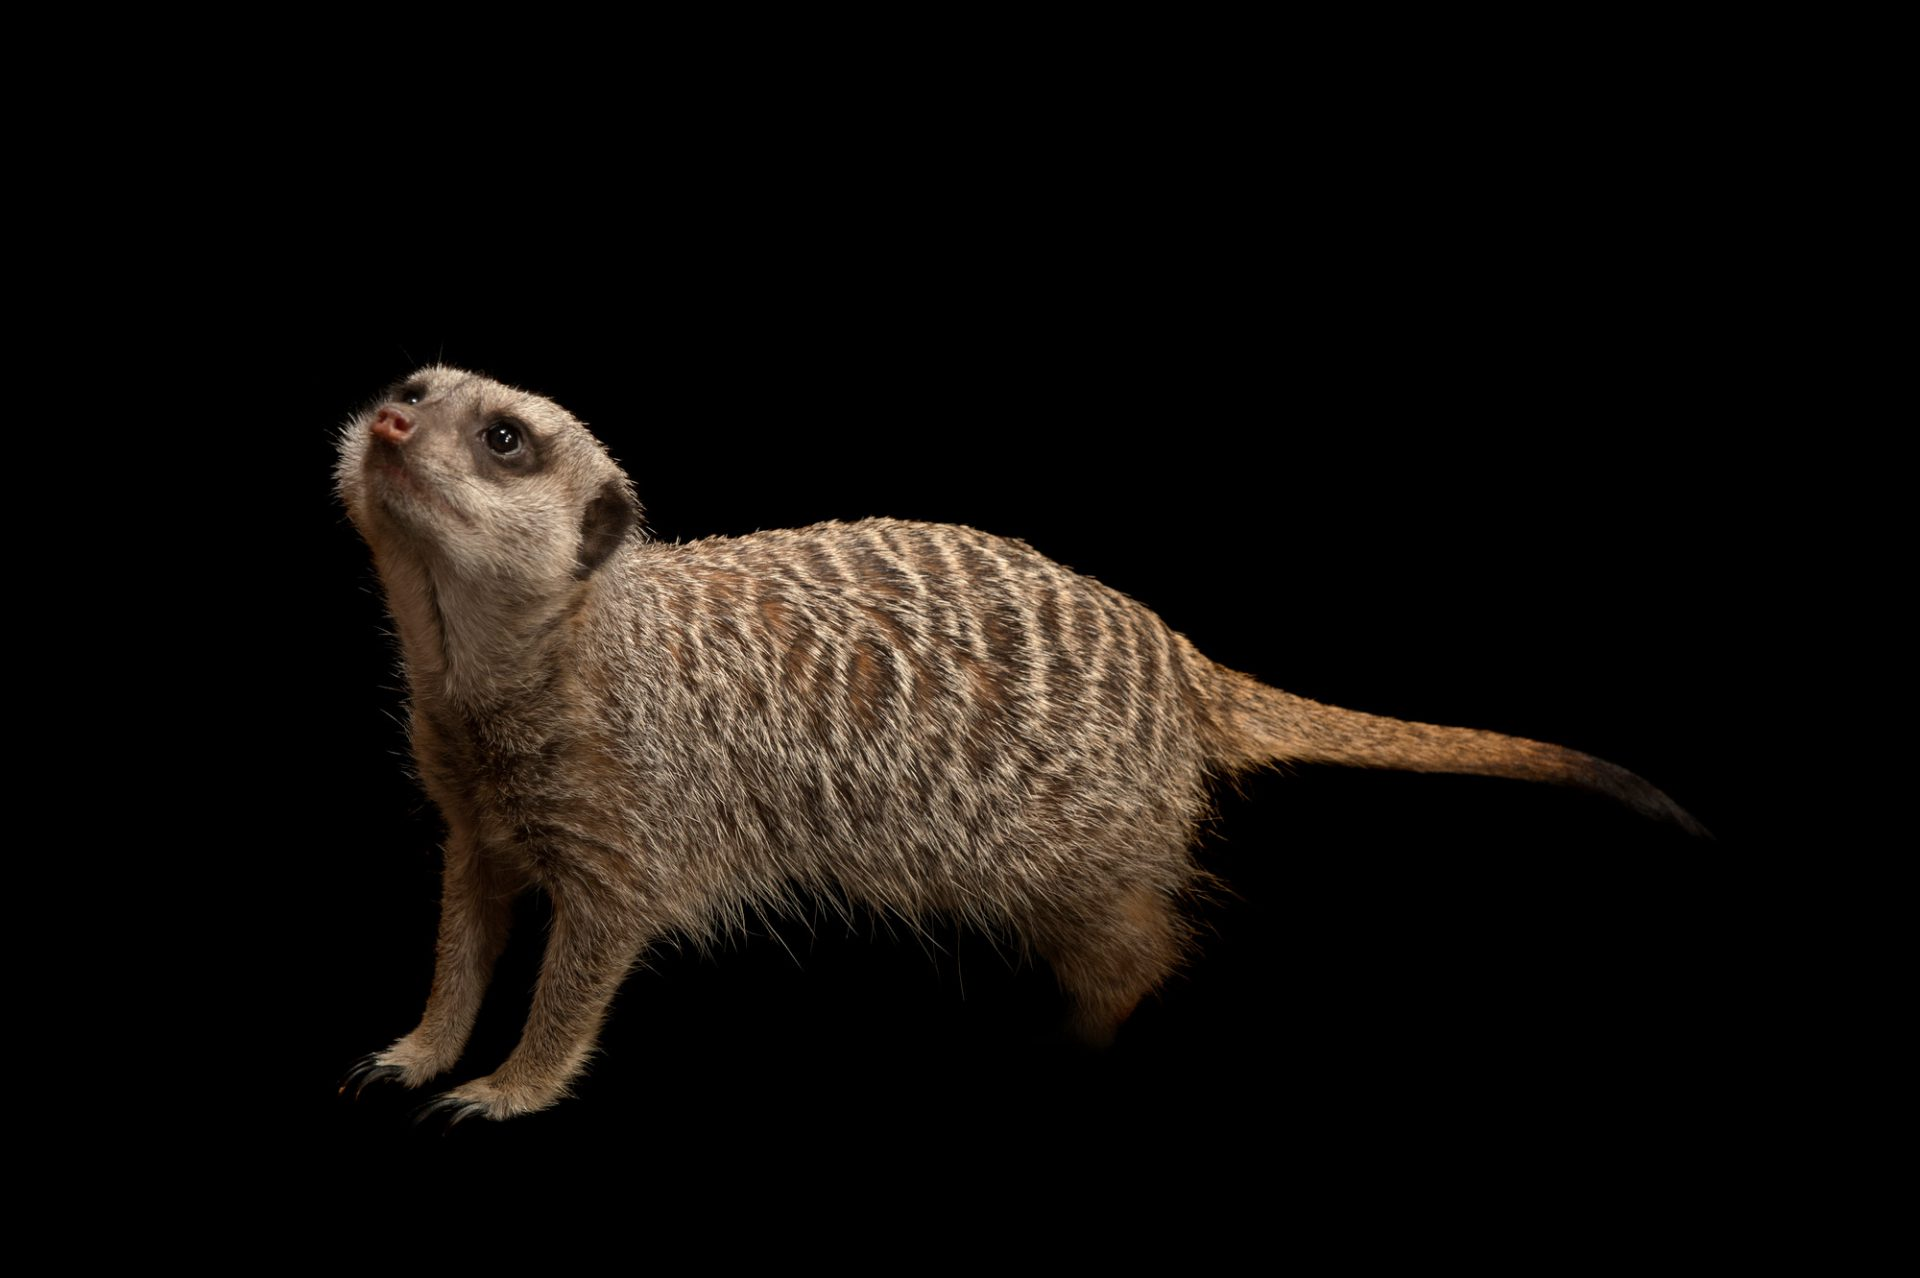 Photo: A slender-tailed meerkat (Suricata suricatta) at the Miller Park Zoo. She is very curious and inquisitive and will chase crickets all over the exhibit to catch and eat.